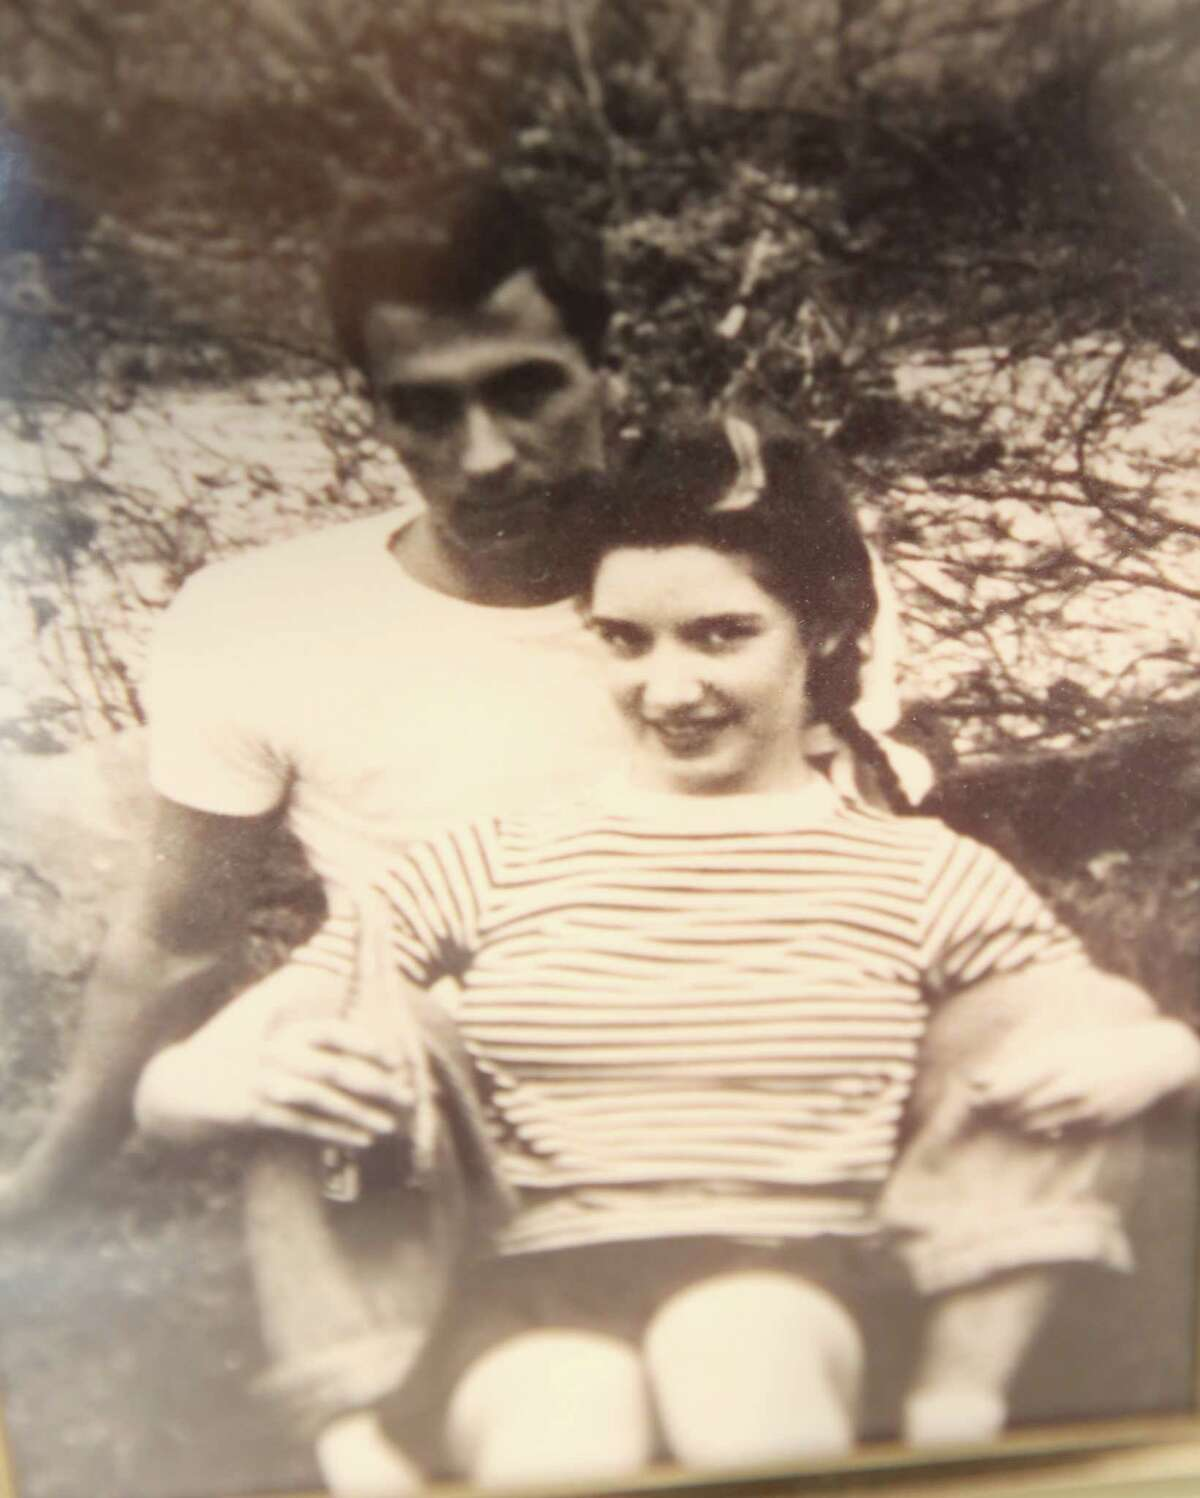 In this old photo, Robert and Margie Jenkins are only 17. They met at age 15 in Latin class.